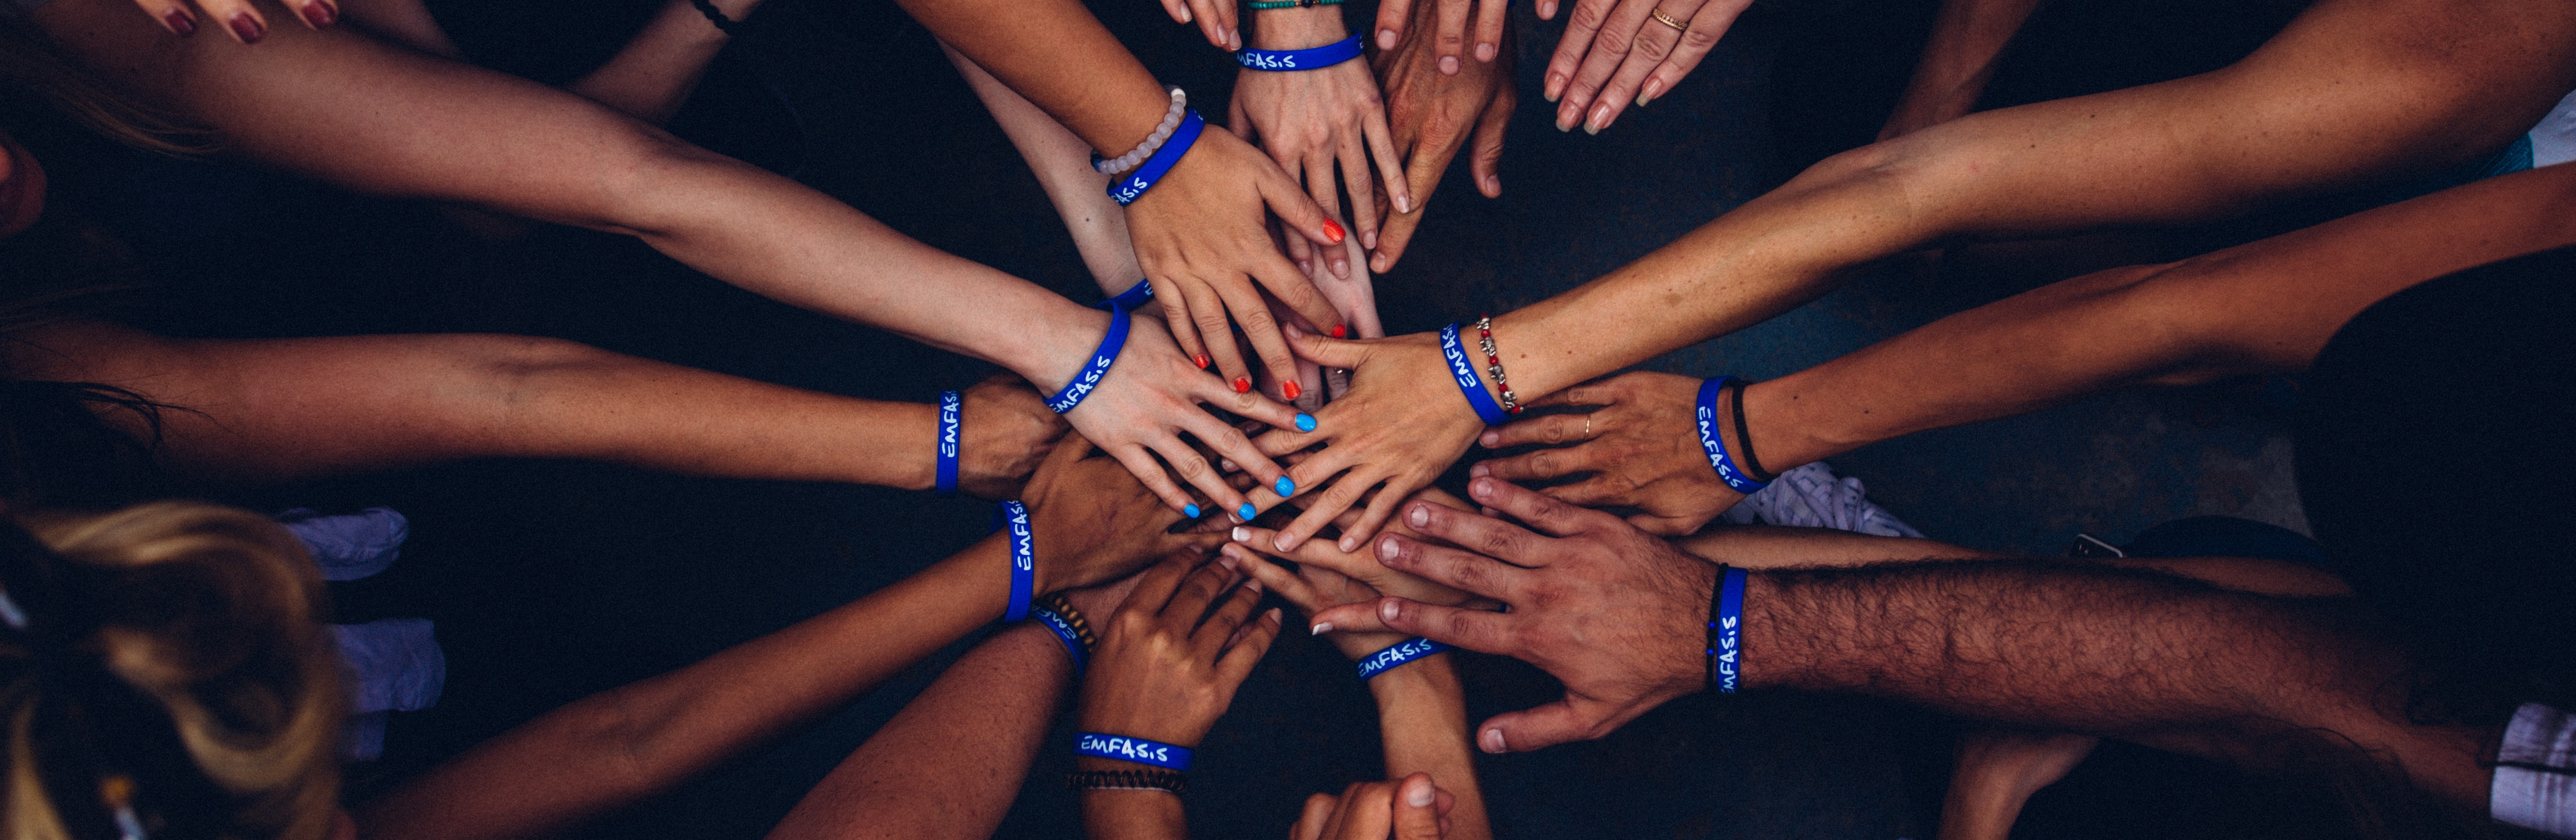 hands volunteering banner - perry-grone-732606-unsplash